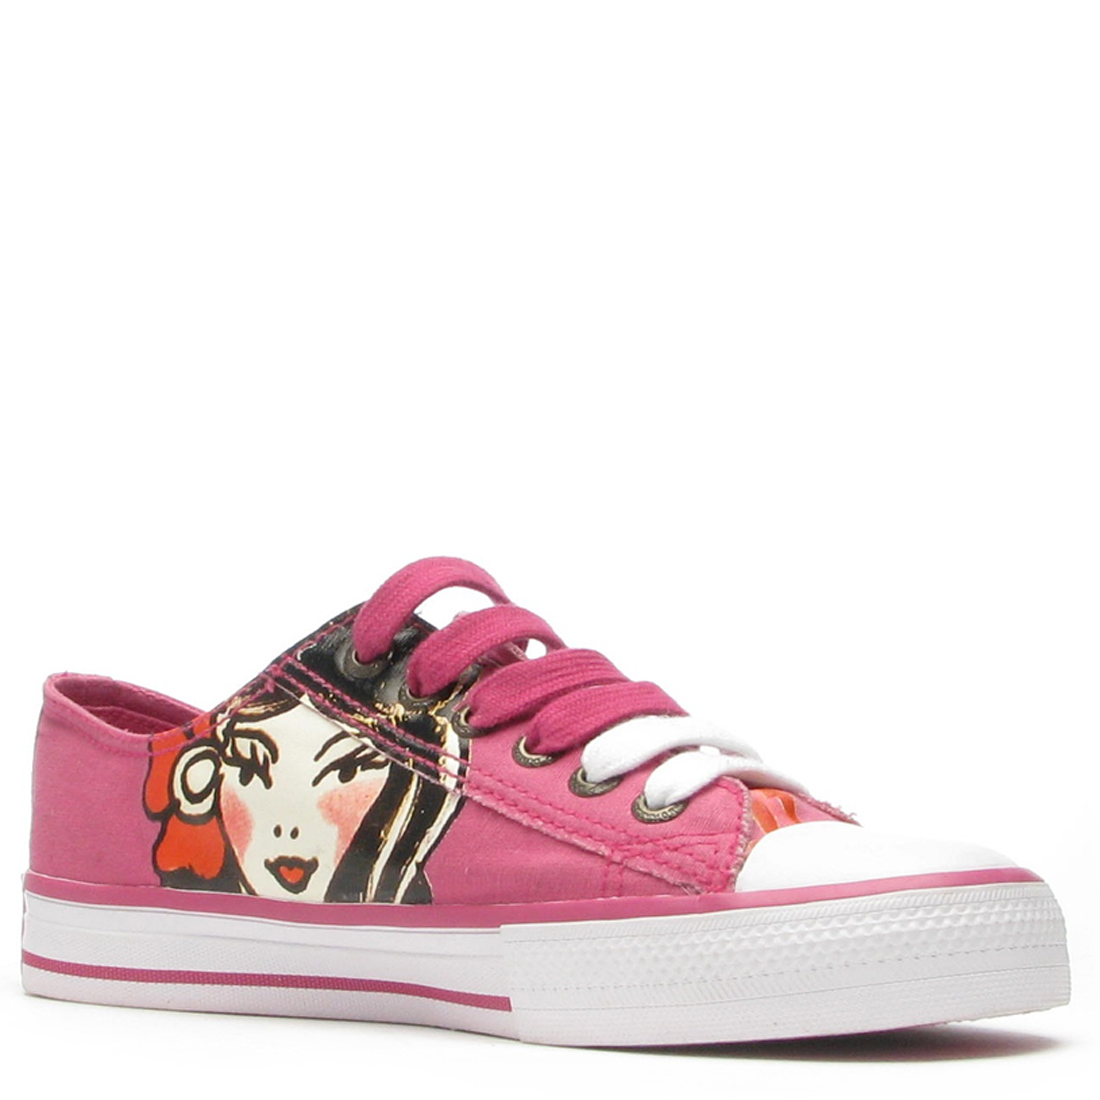 Ed Hardy Lowrise Bela Sneakers for Women- Fuschia